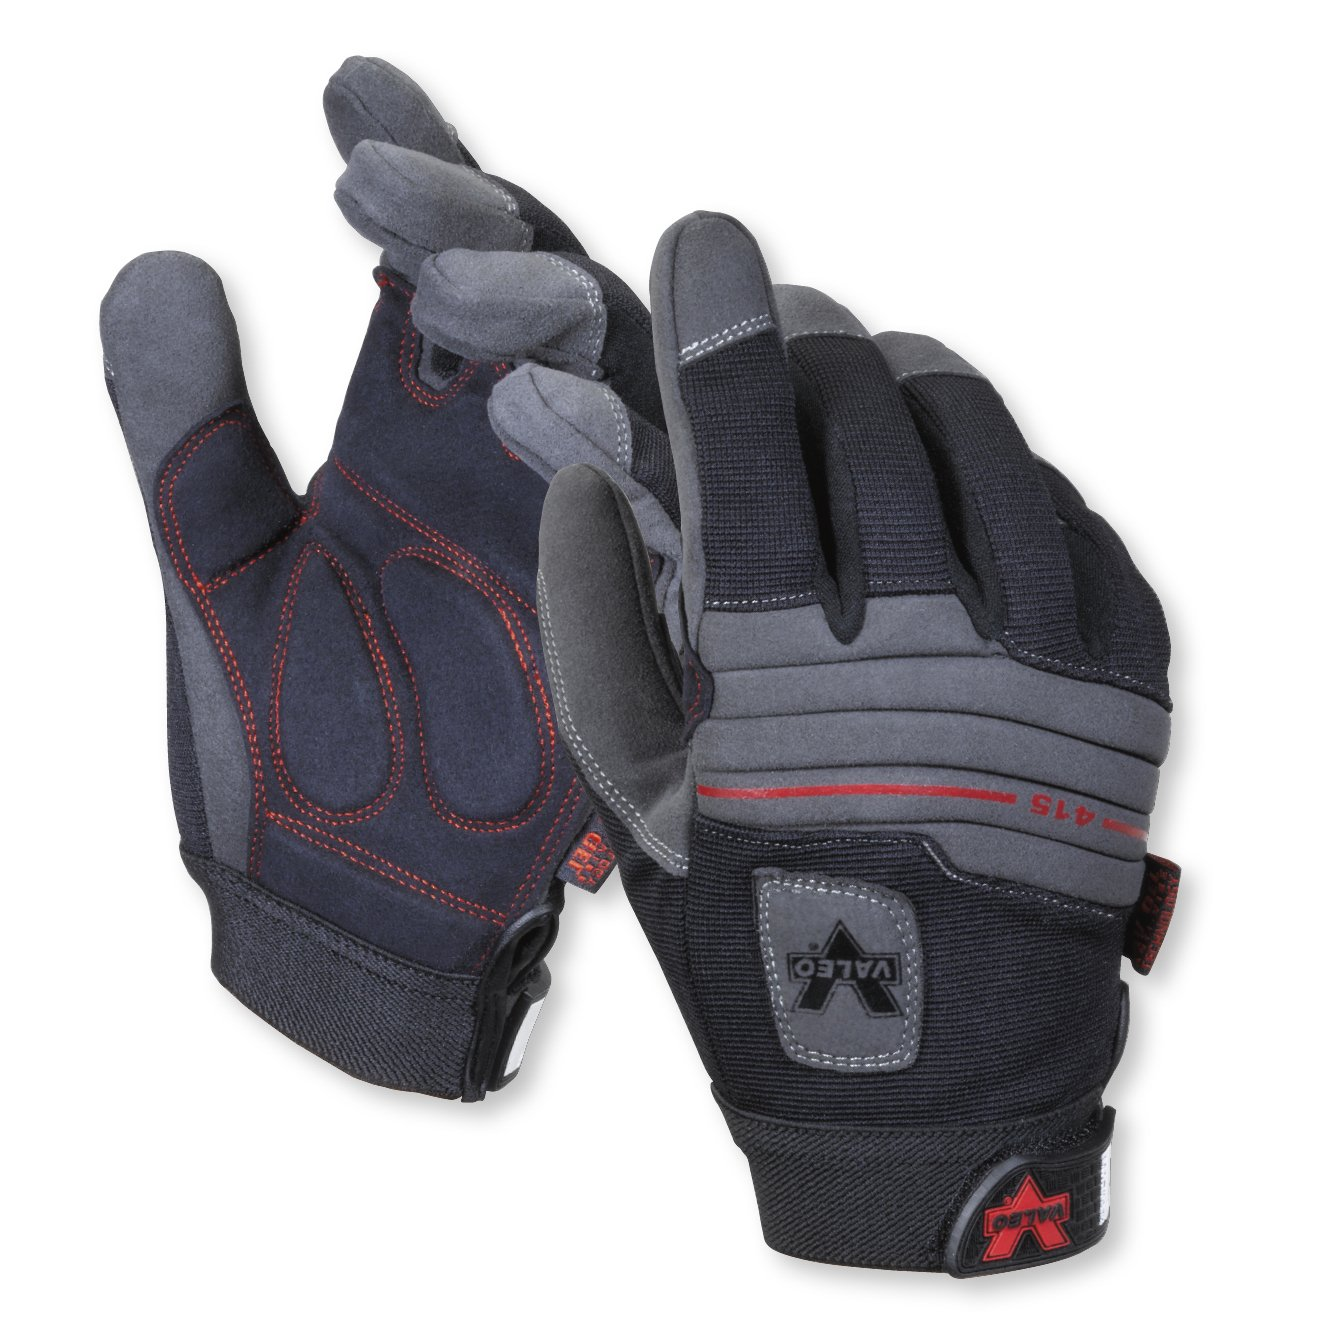 Valeo Industrial V415 Mechanics Anti-Vibe Gloves with Padded Back, VI4867, Pair, Black, Medium by Valeo (Image #1)